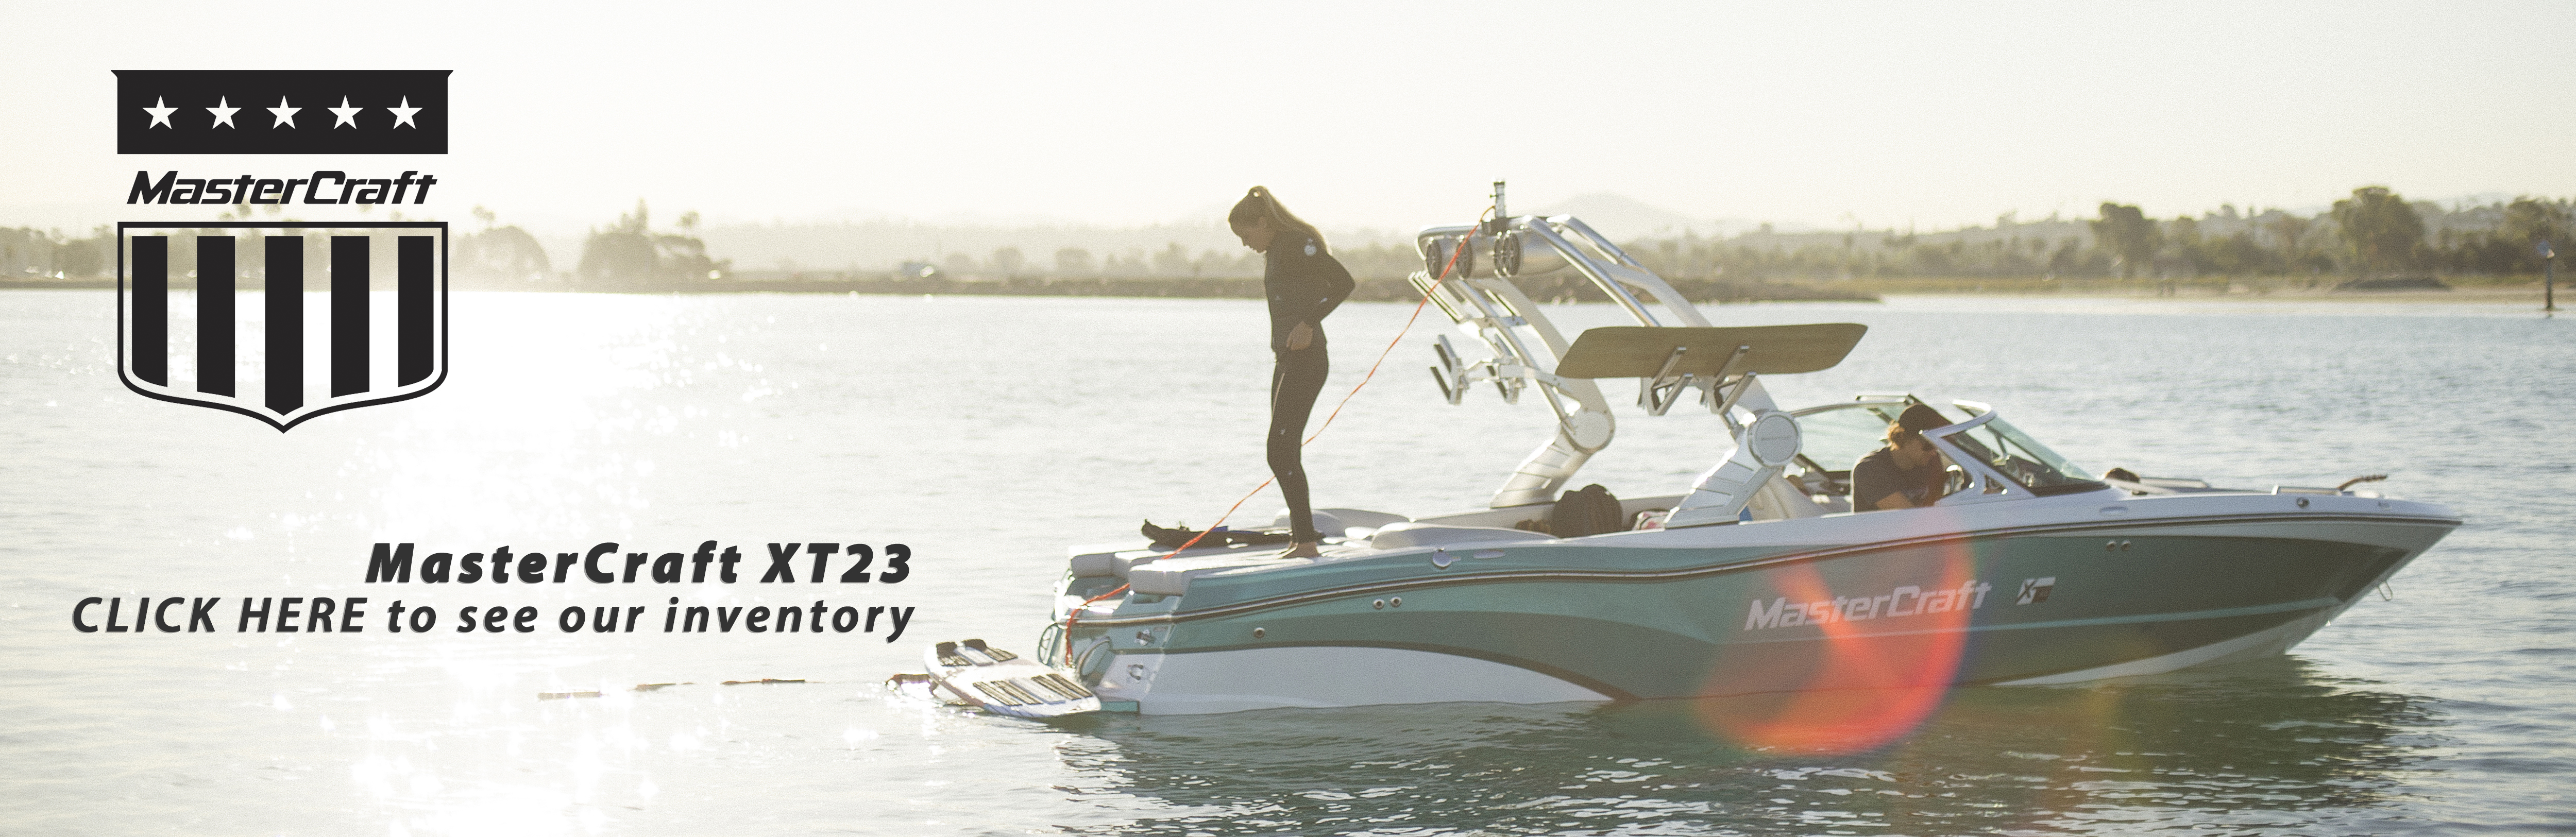 Banner - MasterCraft XT23 with pretty girl on back